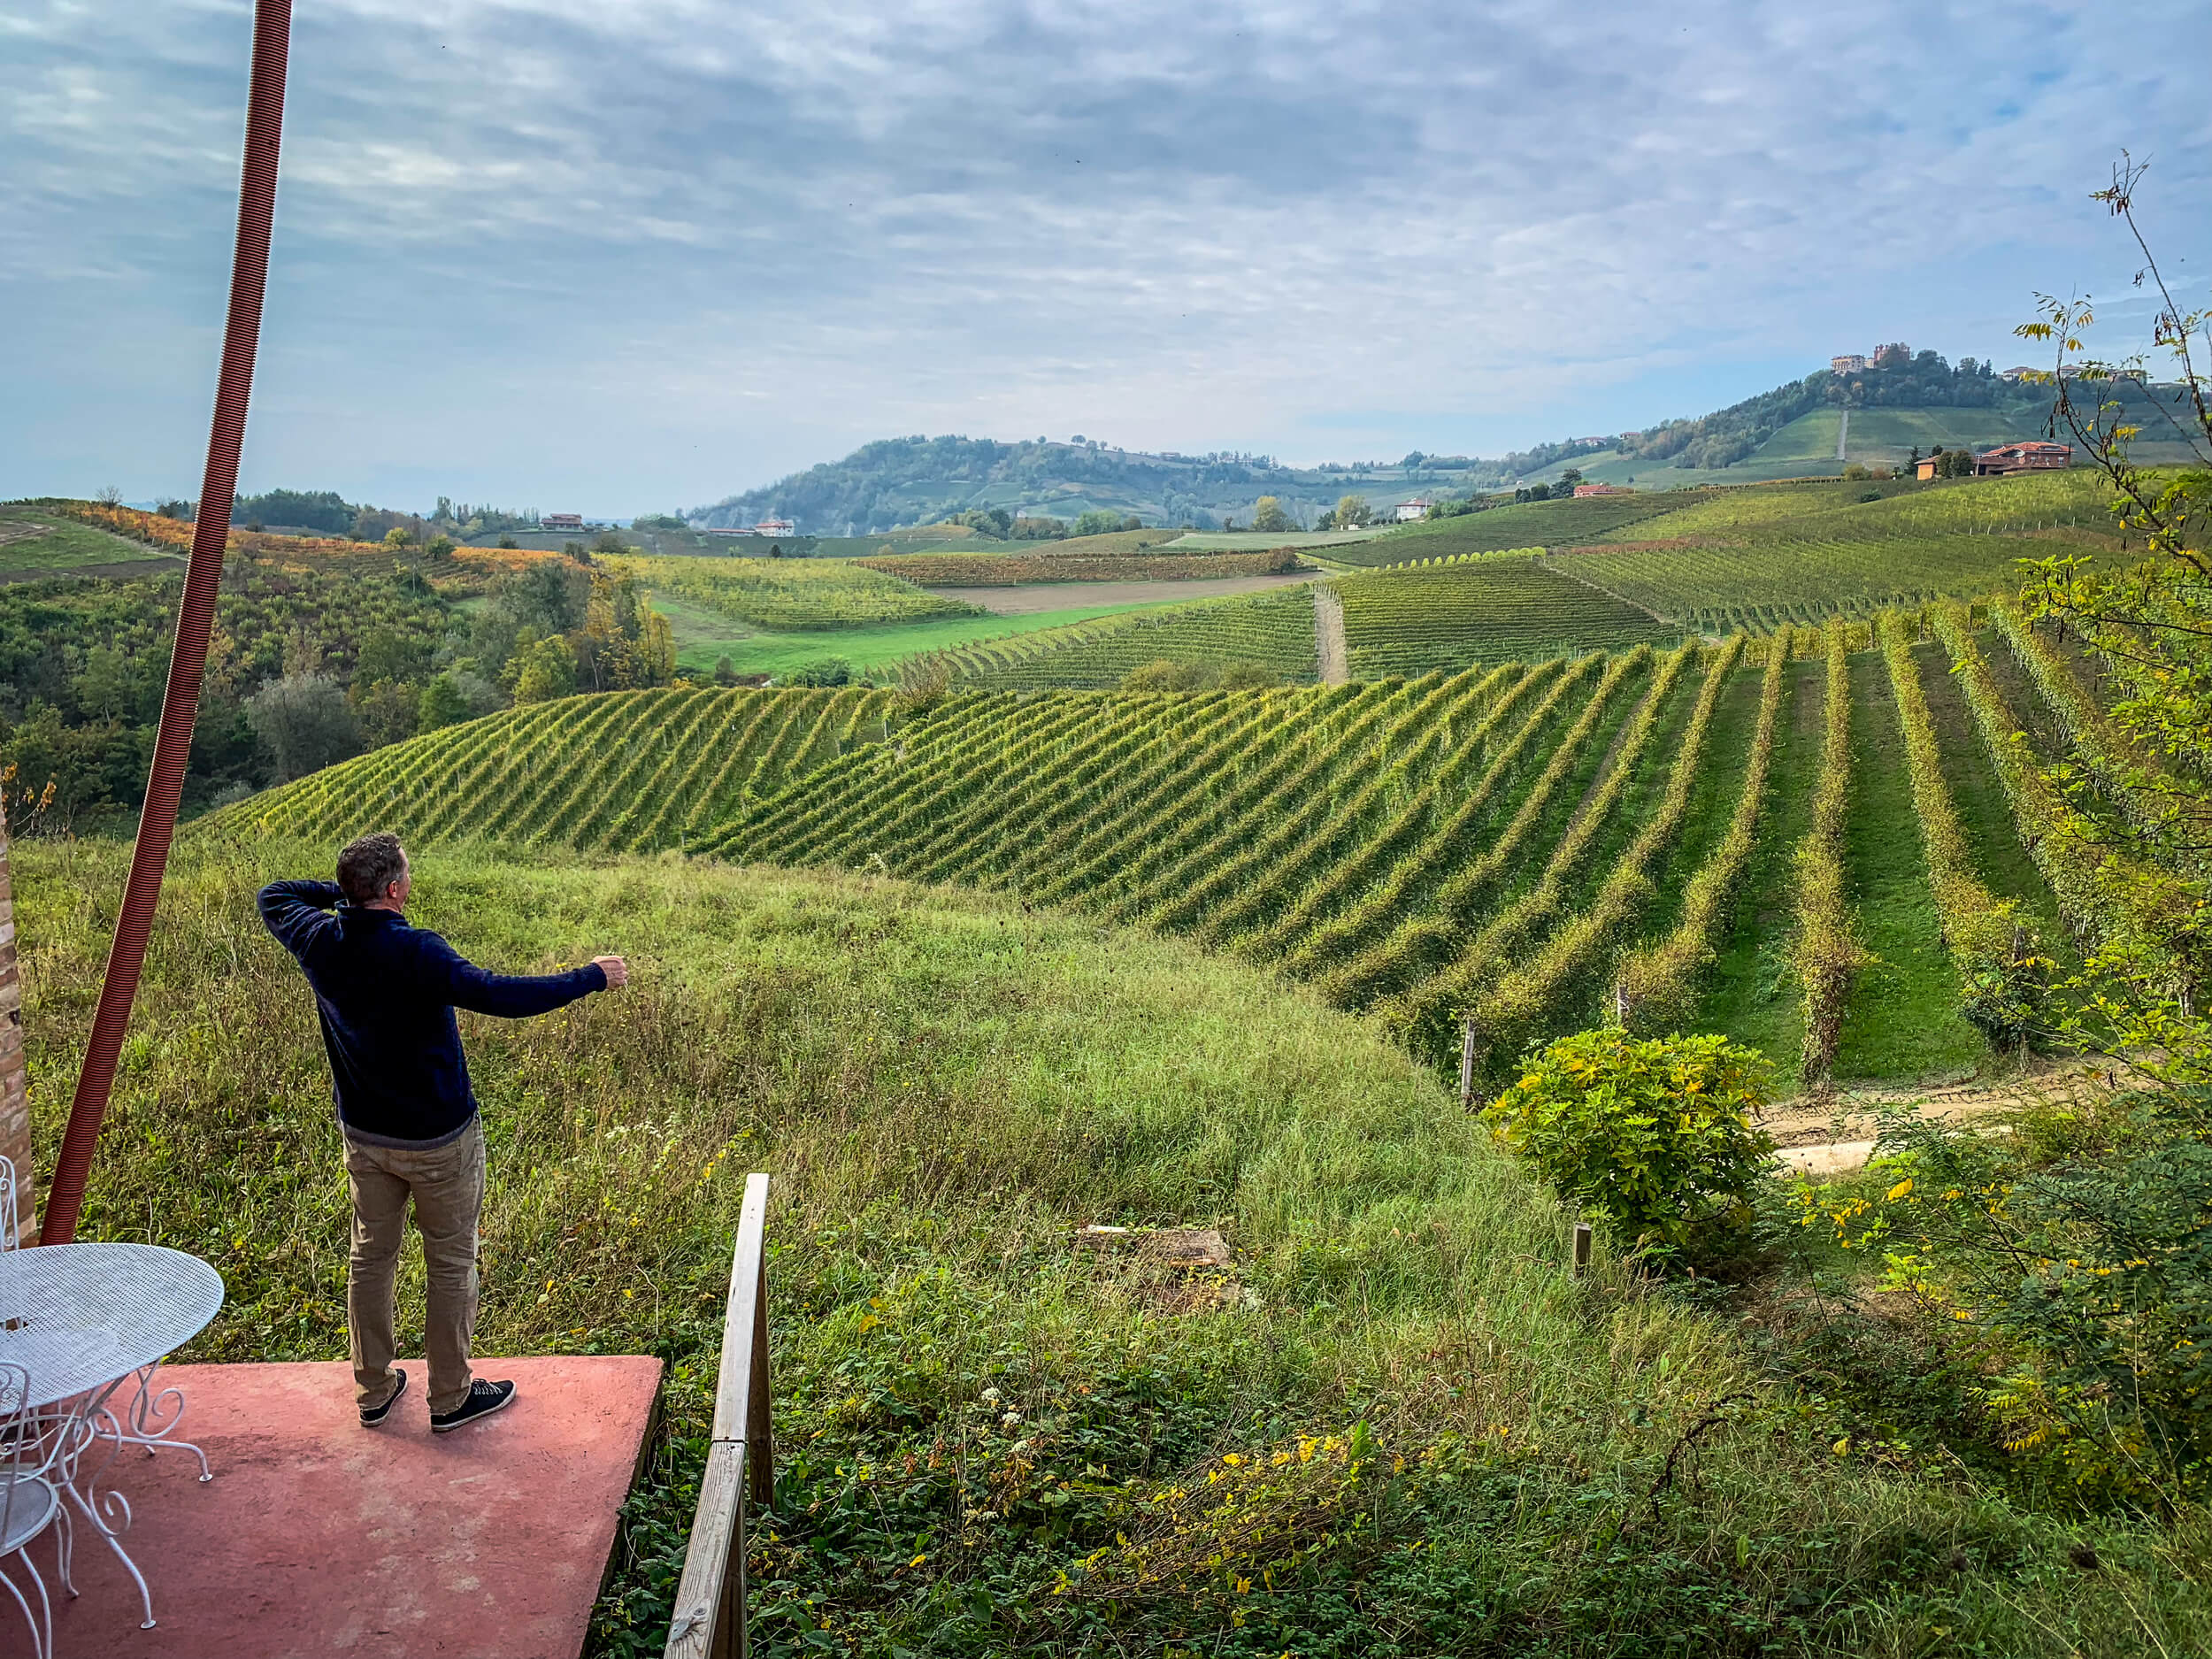 Overlooking Simone Scaletto vineyard